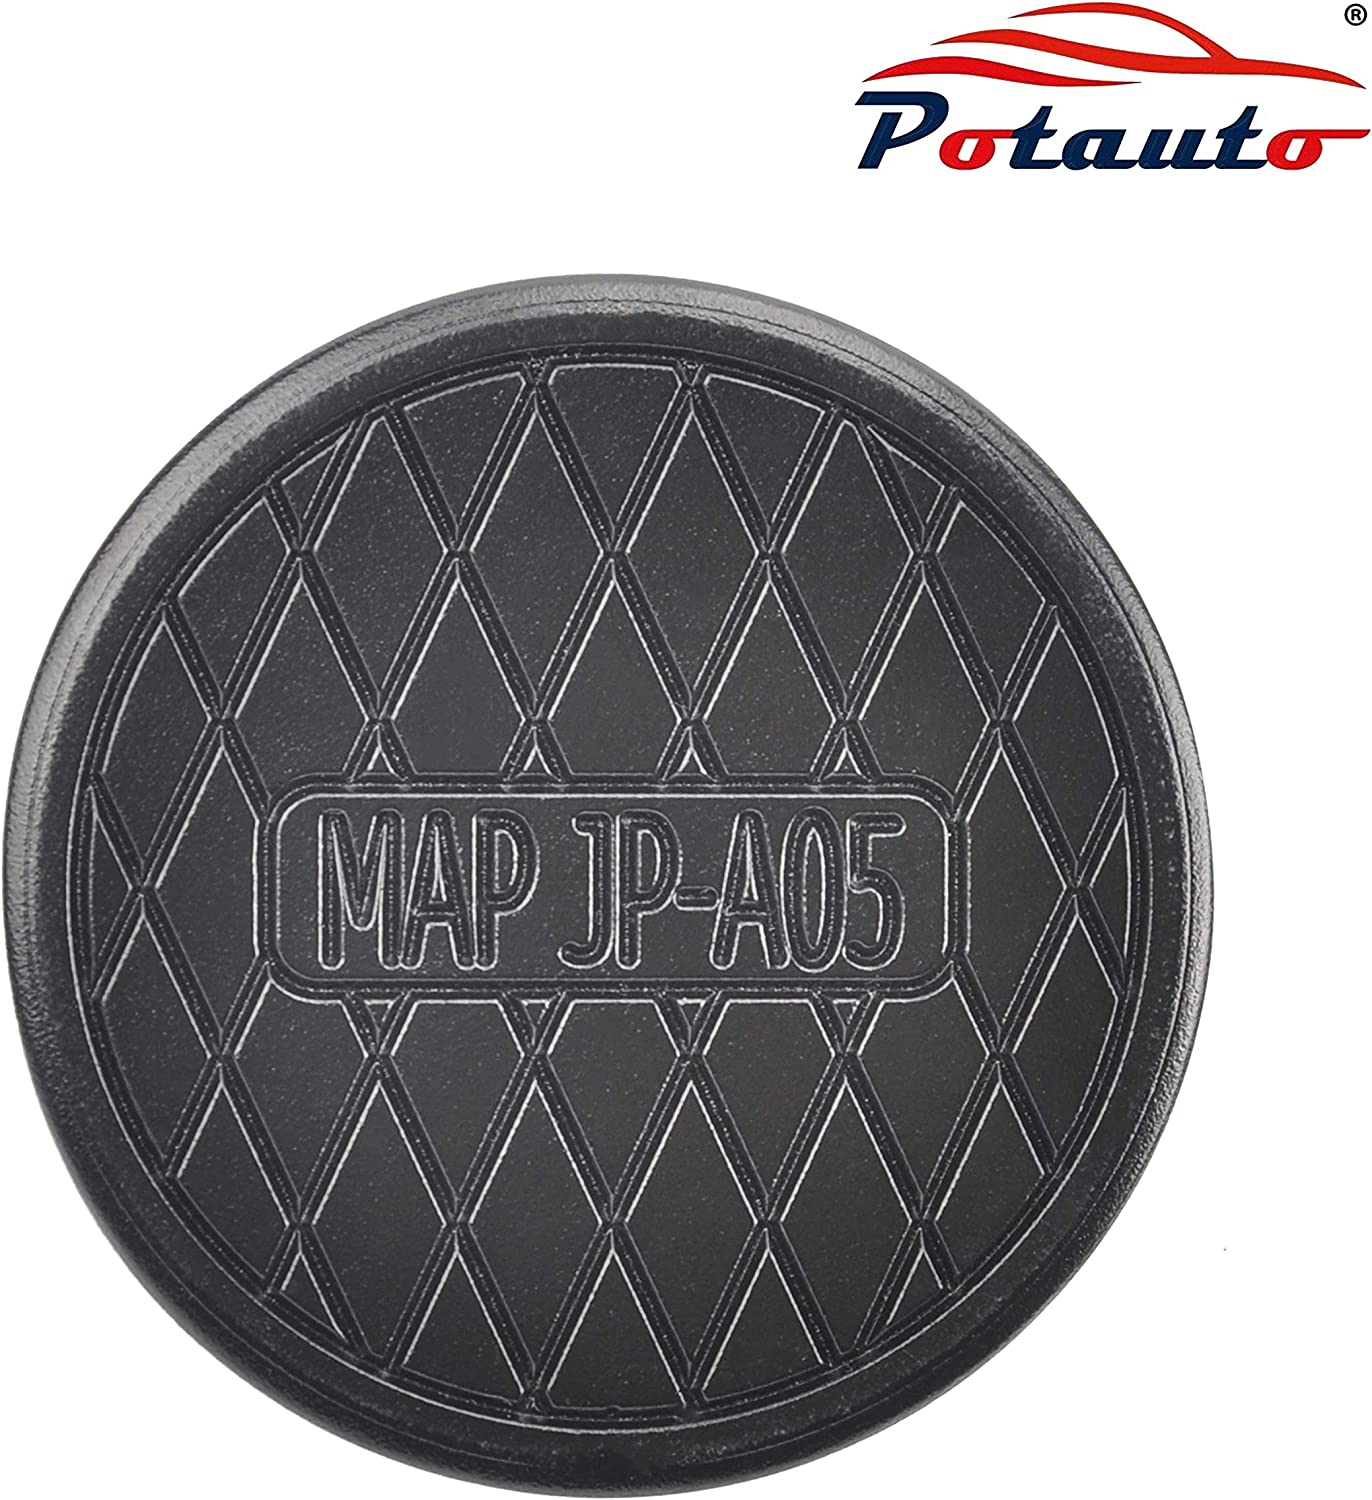 Jack Pad for Tesla, Black POTAUTO Universal Aluminum Jack Pad Adapter Support for Tesla Model X and S